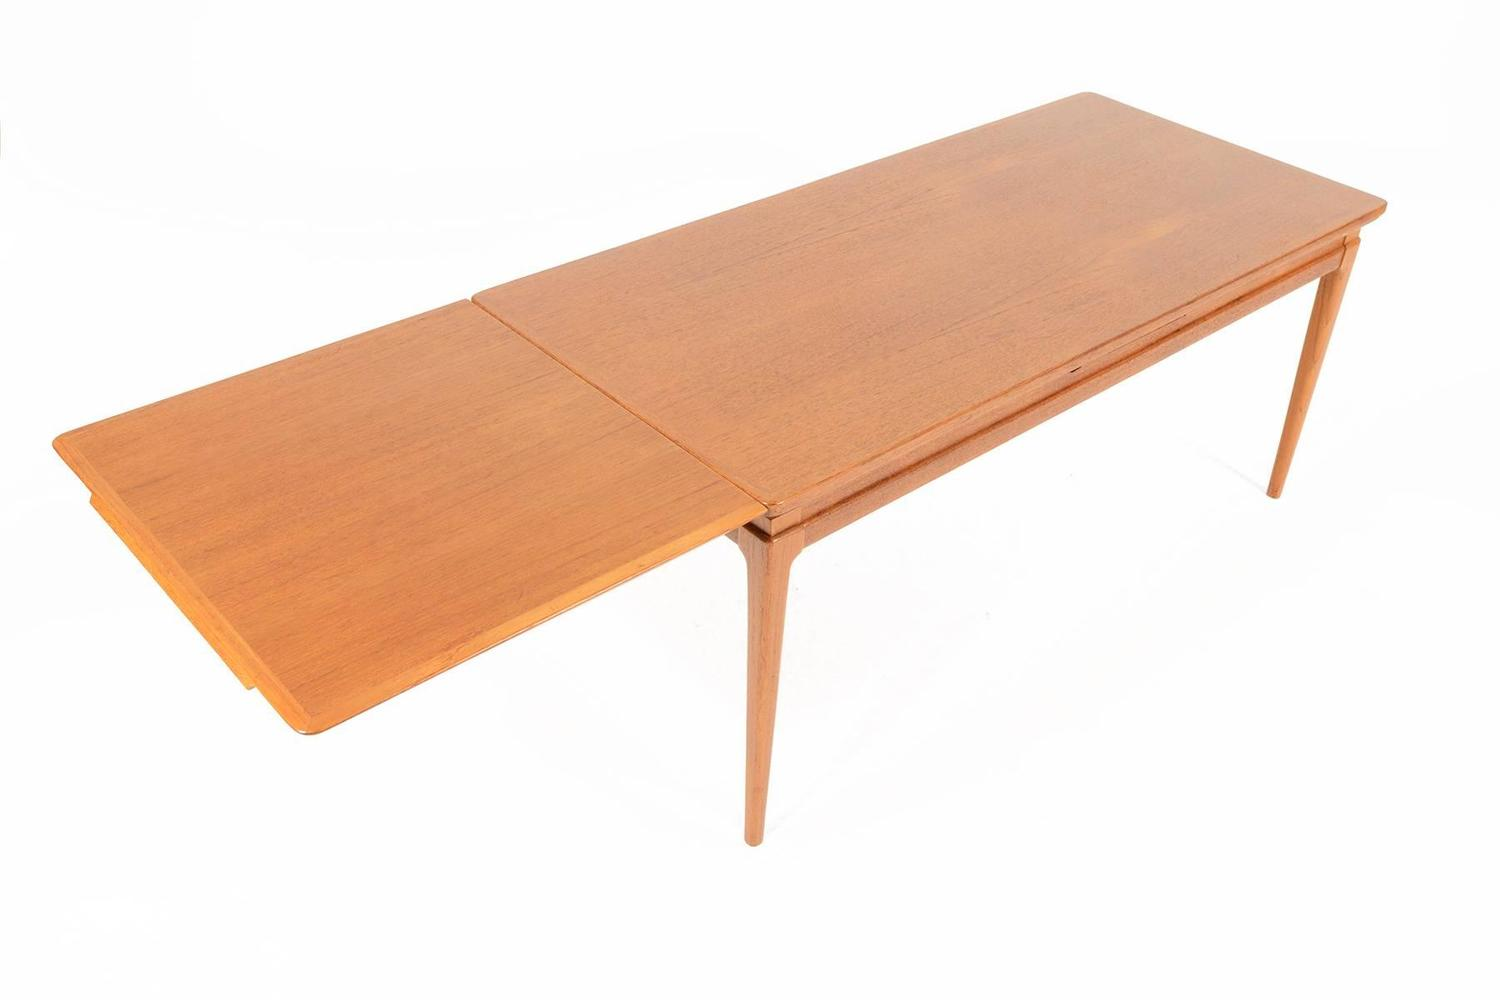 Danish Modern Extendable Coffee Table In Teak For Sale At 1stdibs